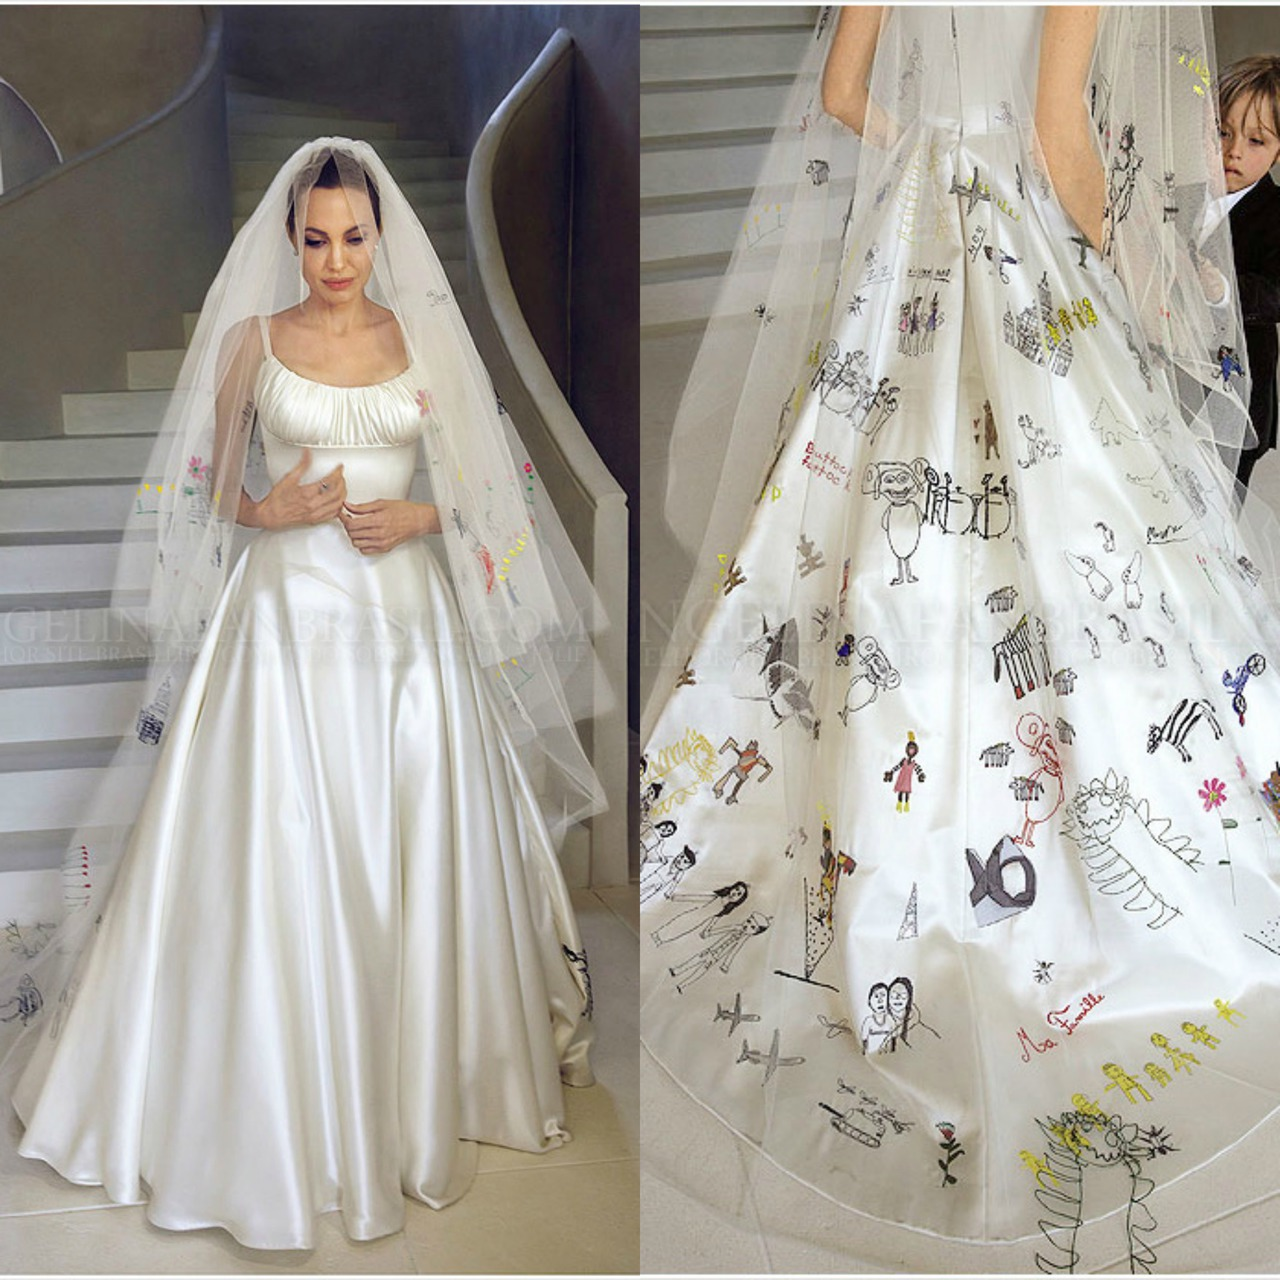 she has draWINGS BY HER CHILDREN SEWN INTO HER WEDDING DRESS this is ...